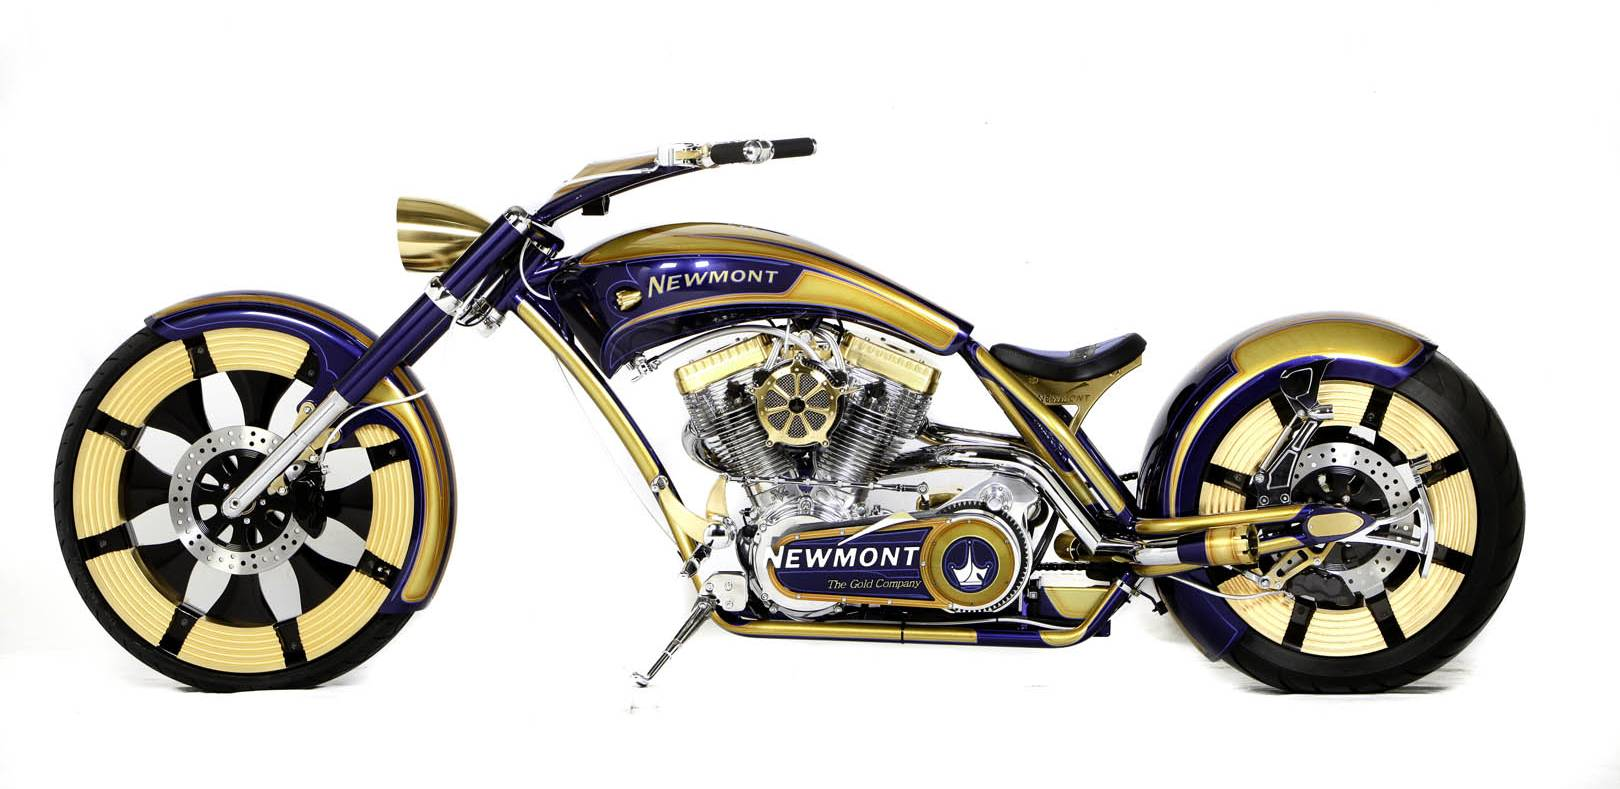 paul-jr-designs-newmont-bike-031